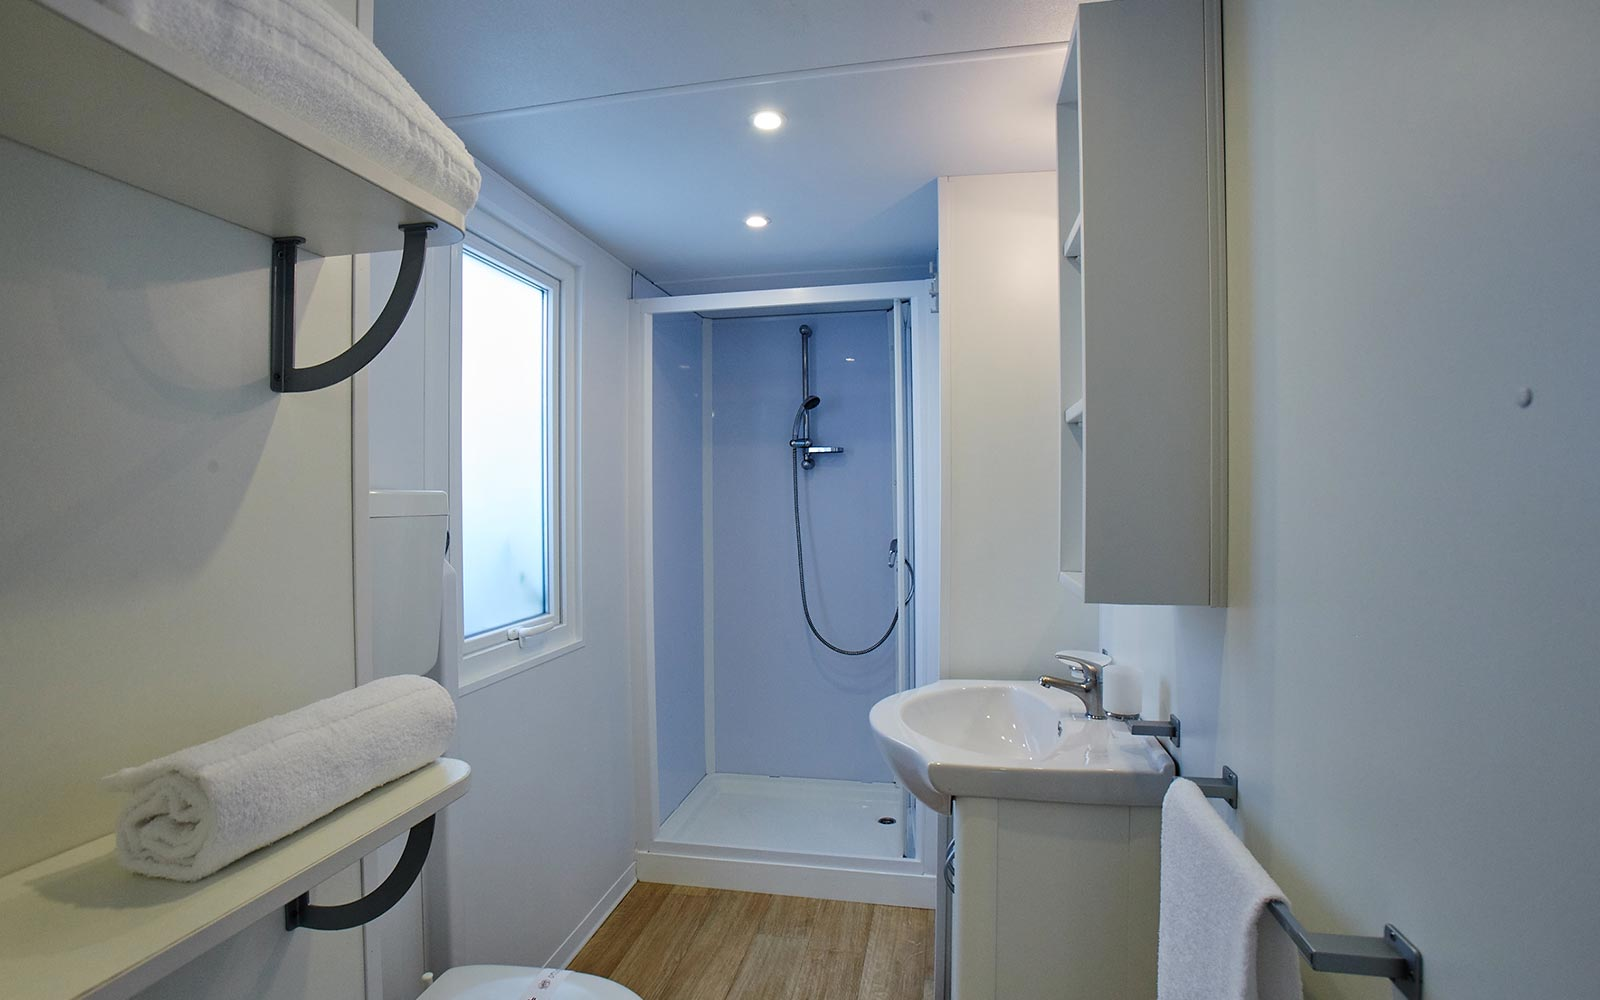 8-Bathroom in campsite